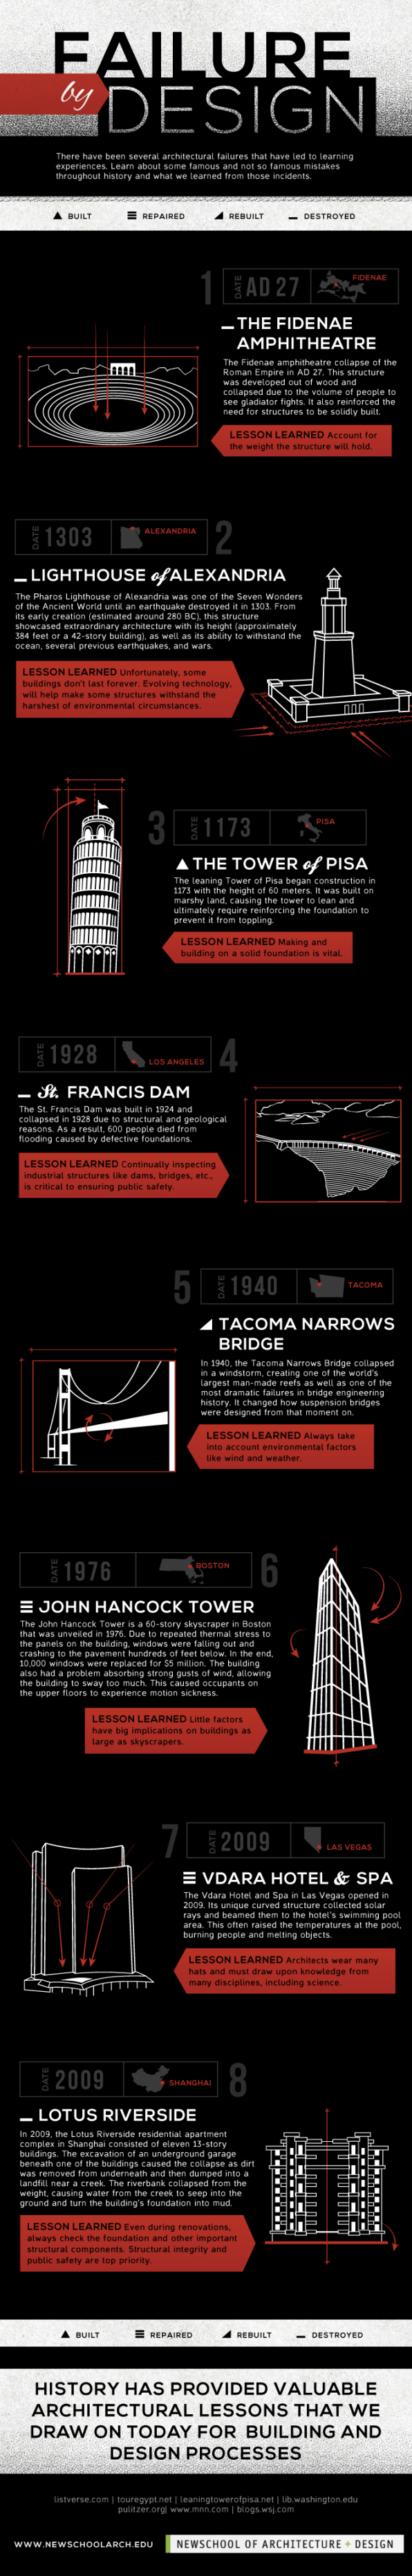 Infographic: 8 Of History's Biggest Design Failures